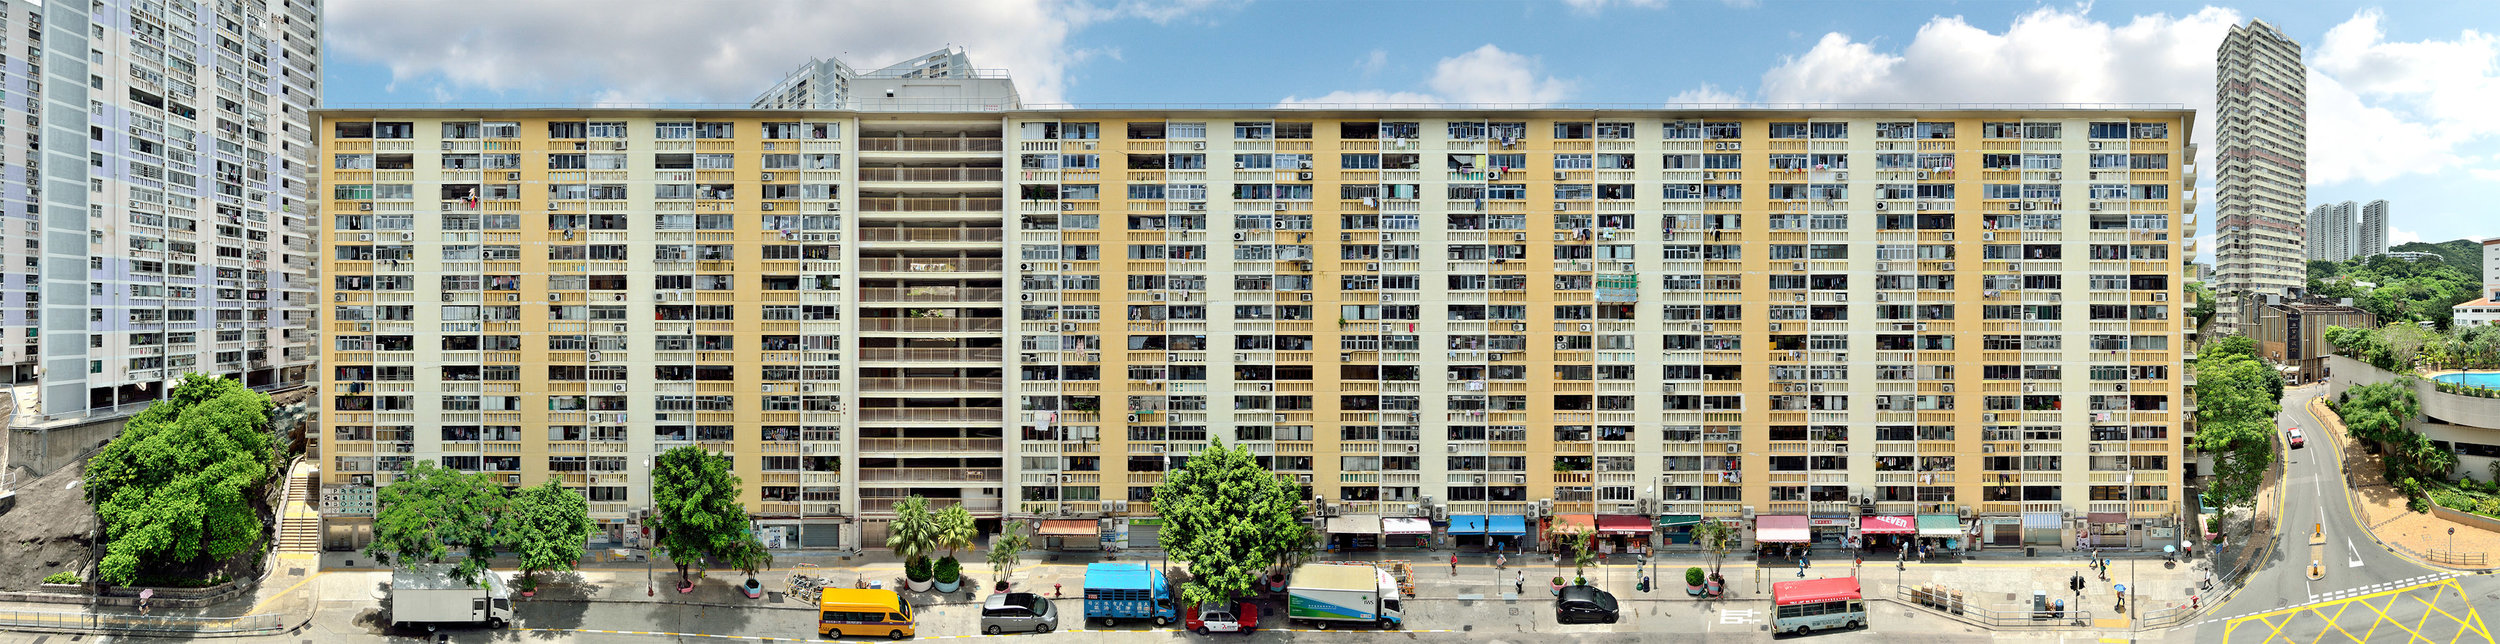 StefanIrvine_Wah Fu Estate_medium.jpg